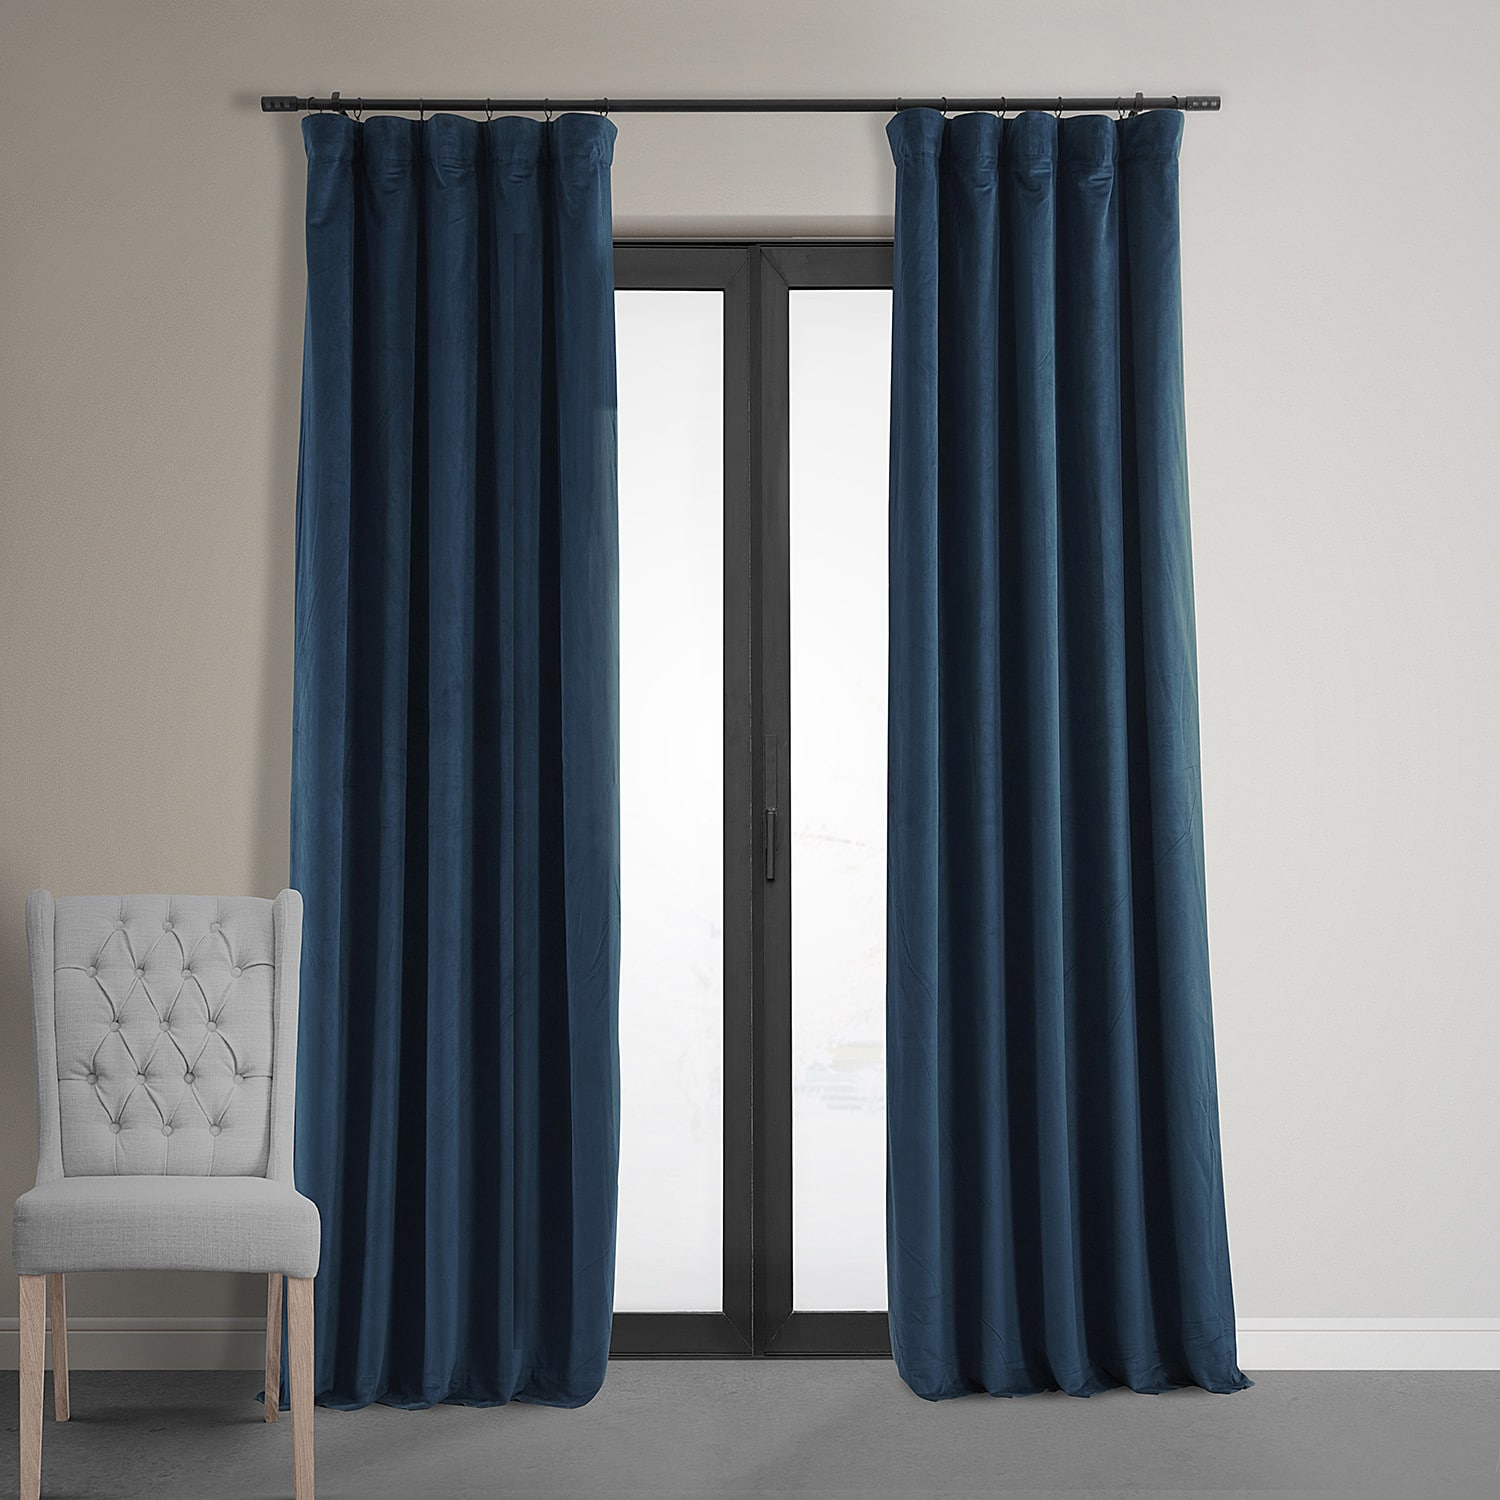 low the down choosing top textured cotton boris tie millie and drapes on curtains drape